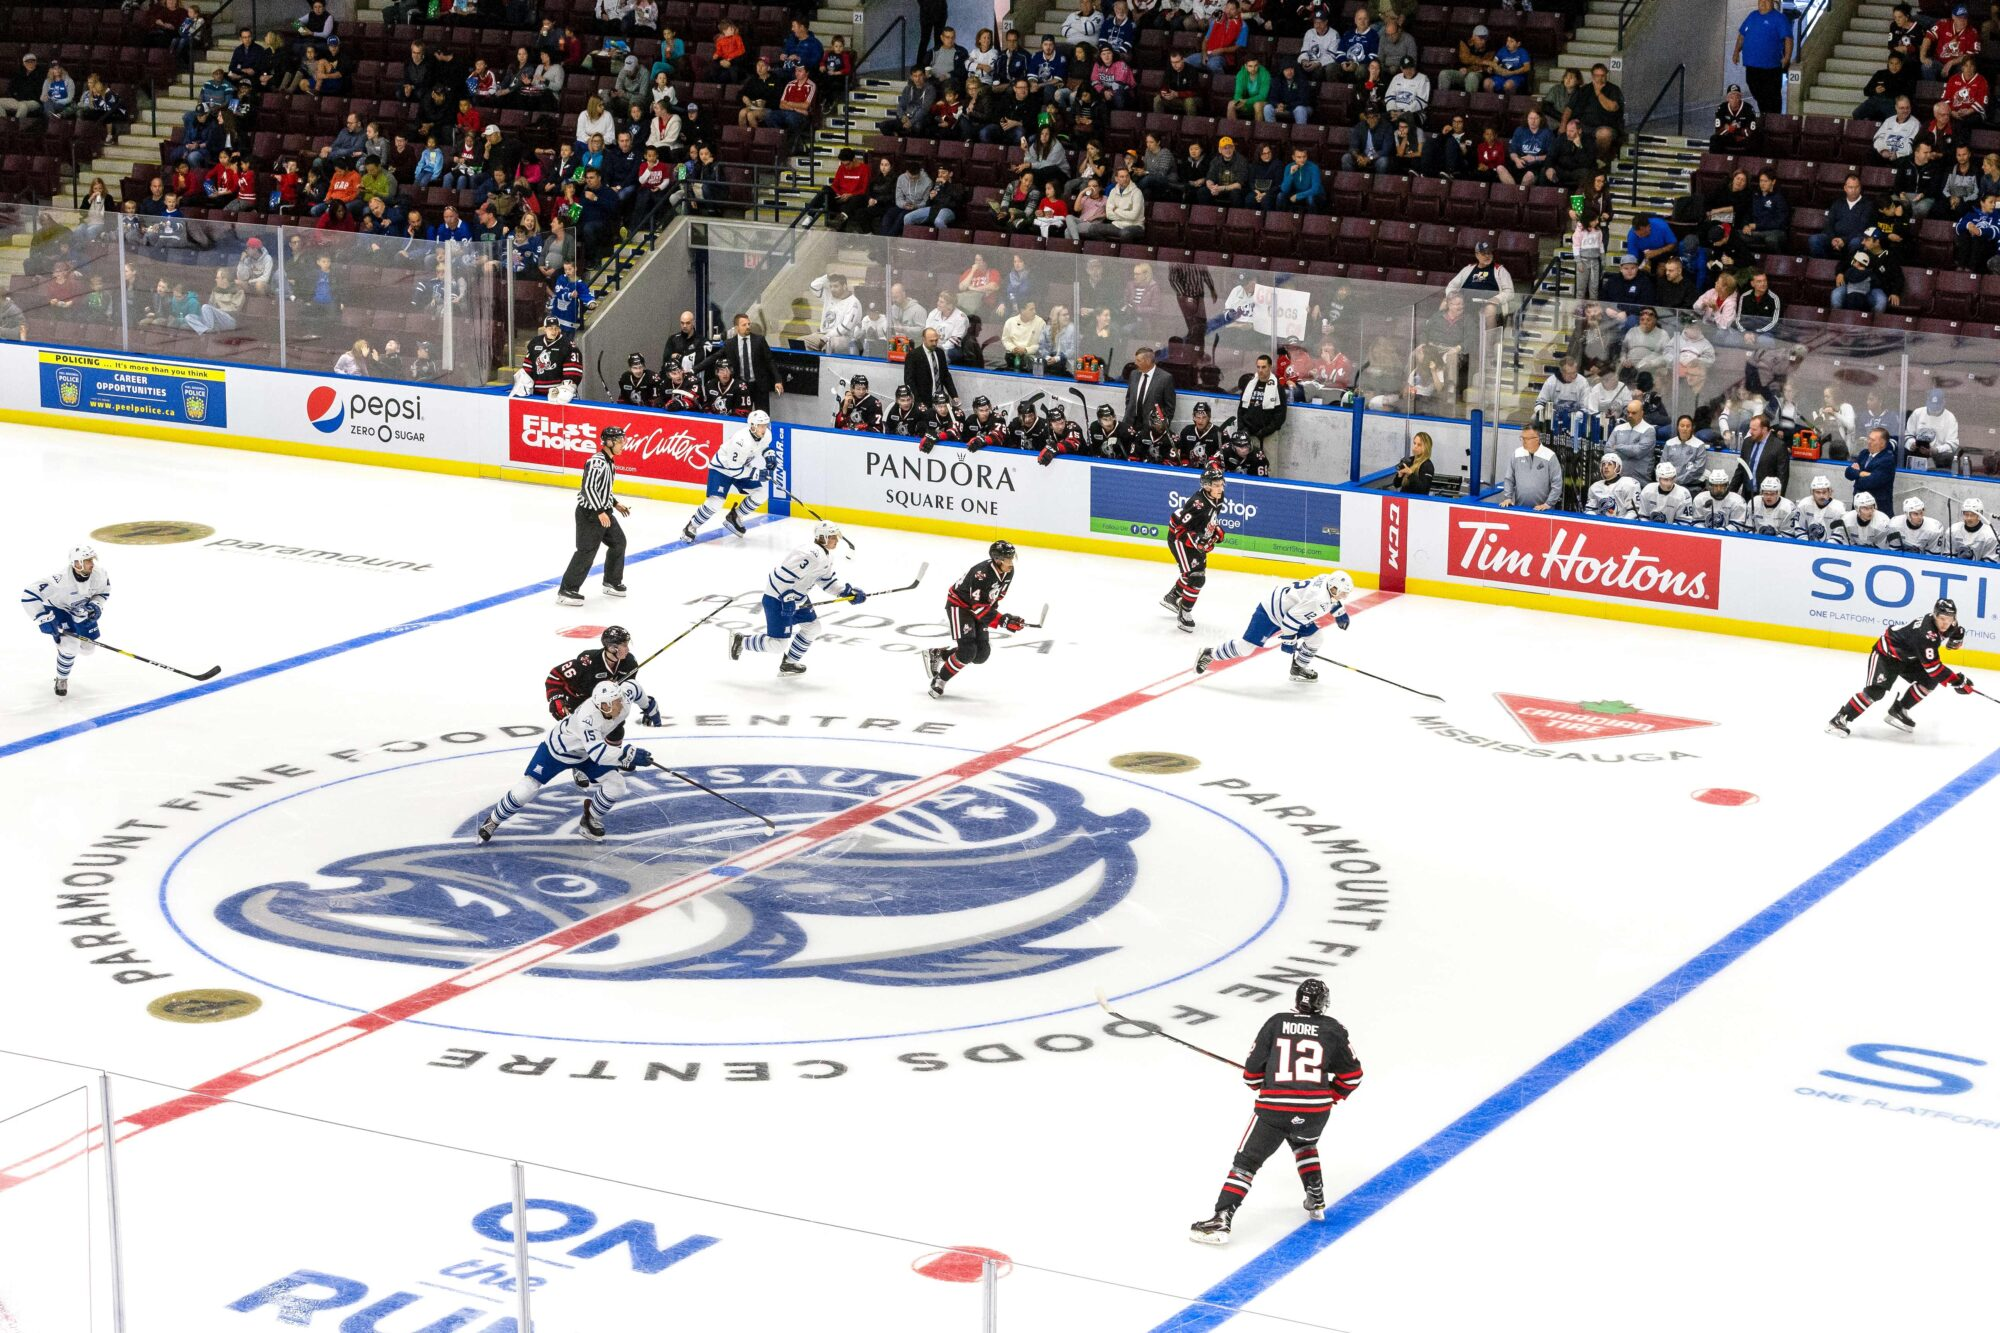 MISSISSAUGA, ON - SEPTEMBER 30: Niagara IceDogs versus the Mississauga Steelheads at their OHL home opener on September 30, 2018 at the Paramount Fine Foods Centre, in Mississauga, Canada. (Photo by Adam Pulicicchio)